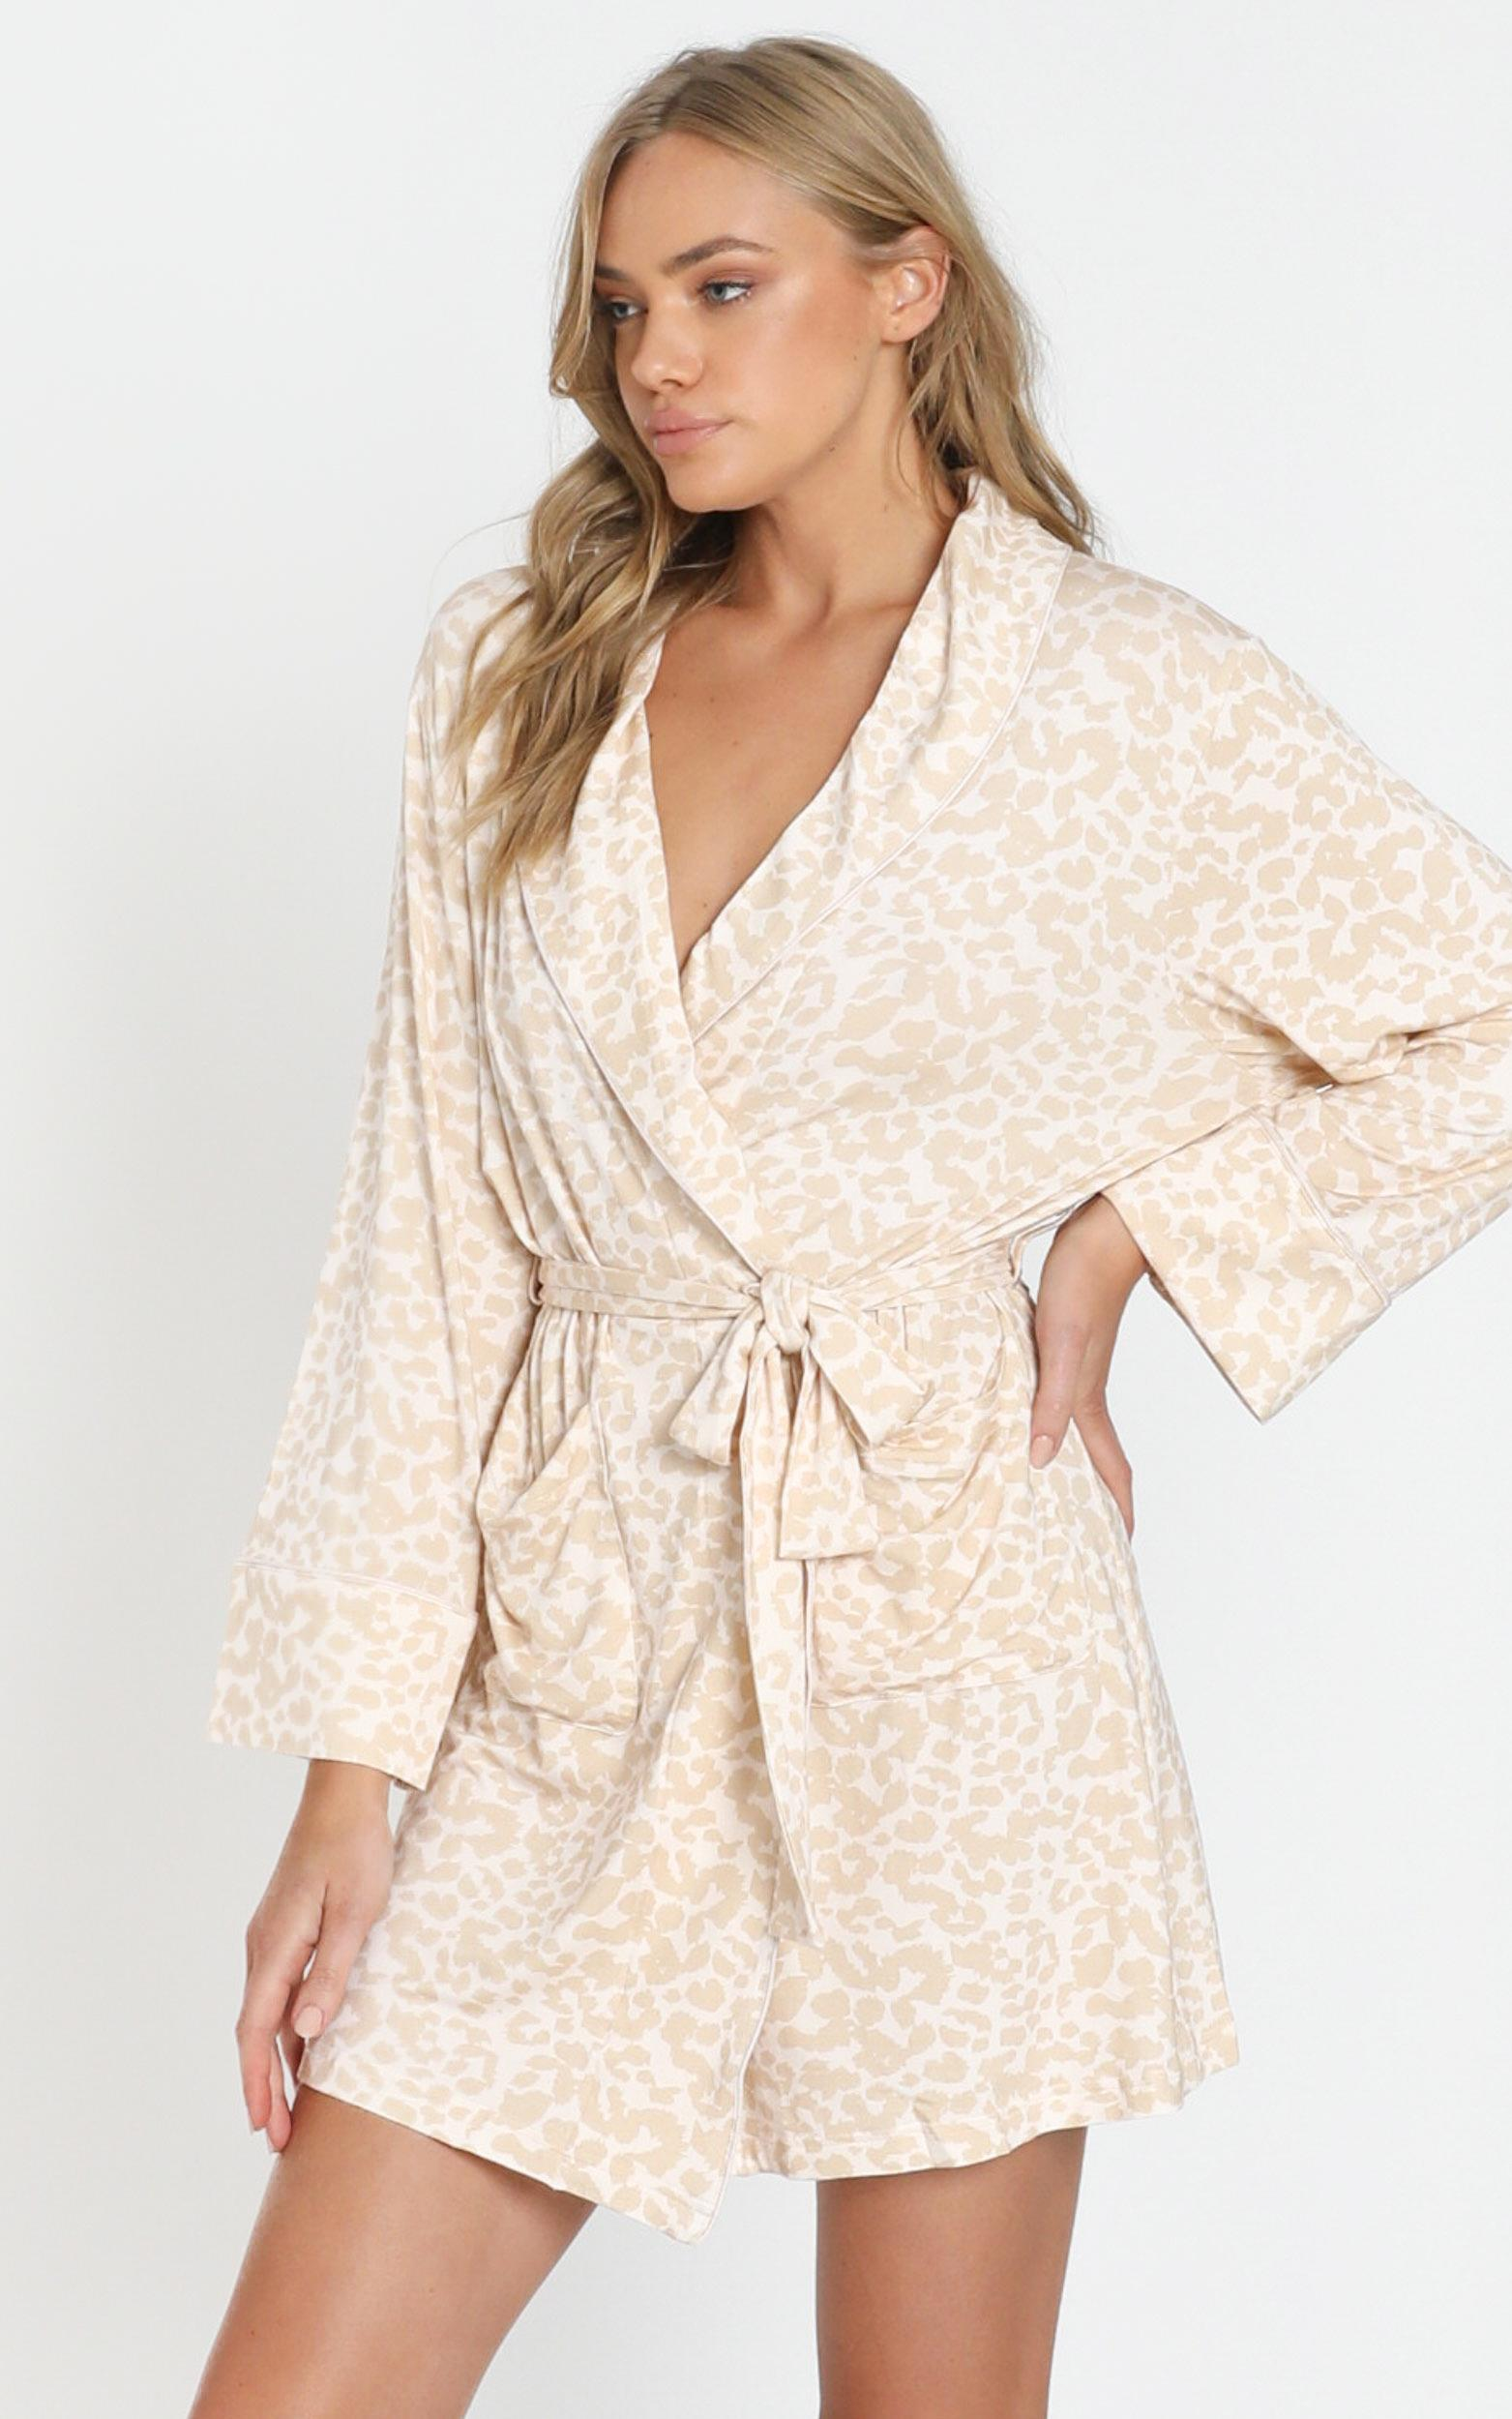 Project REM Wrap Gown in Leopard - 6 (XS), Beige, hi-res image number null